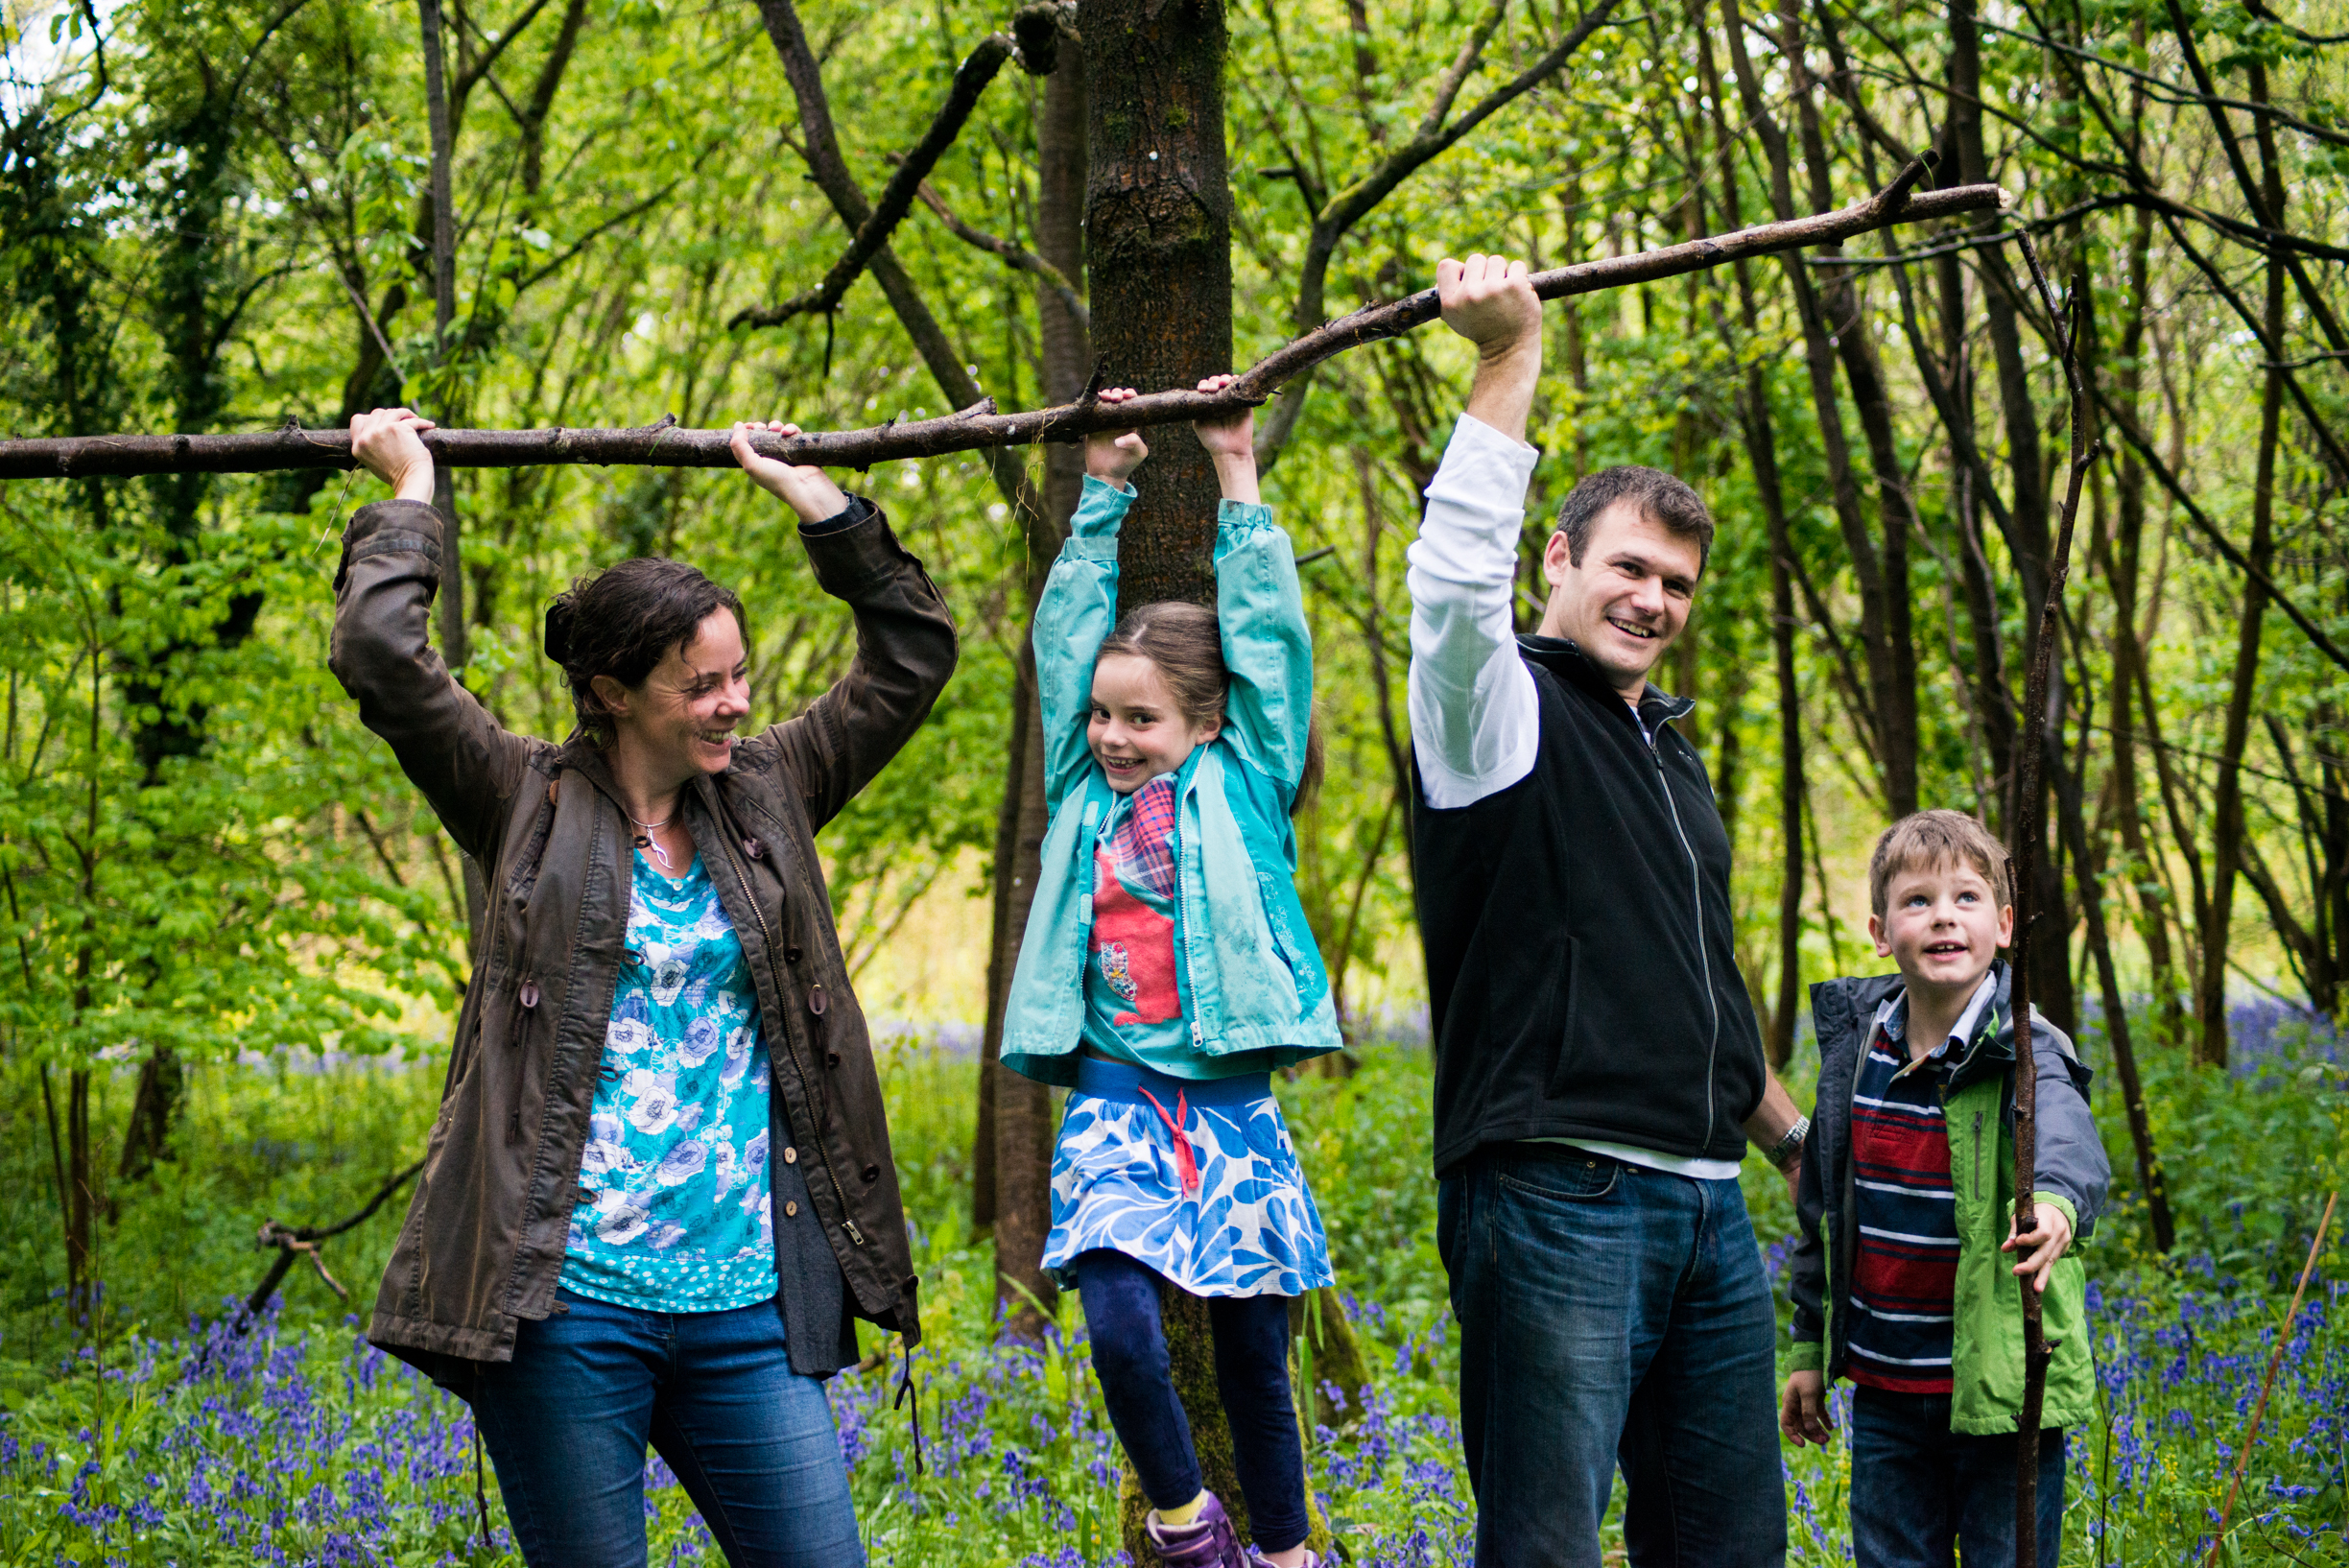 Family Photoshoot with Worthy Photography in the Bluebells at Otterbourne, near Winchester